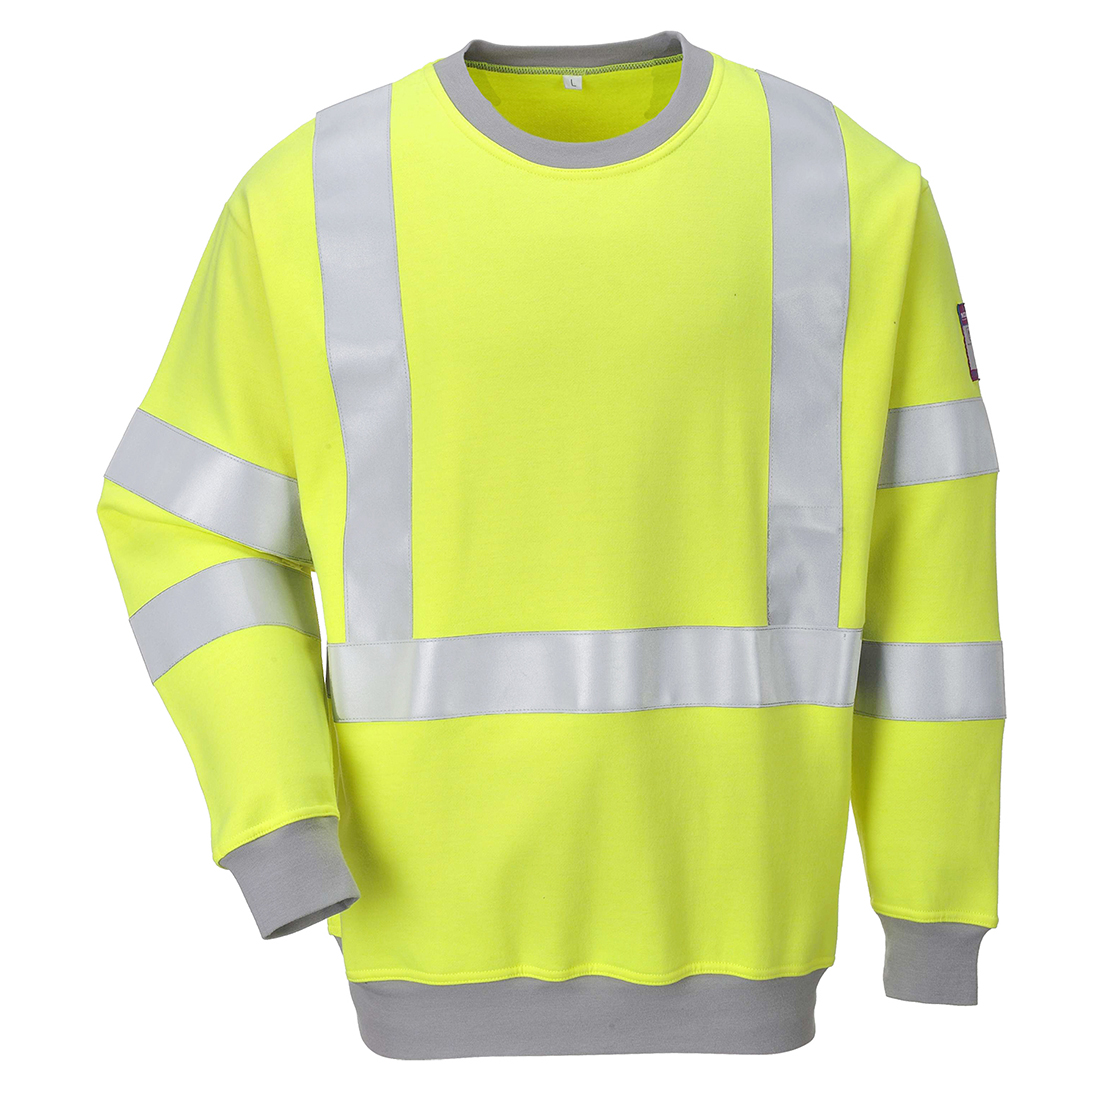 Portwest Flame Resistant Anti-Static Hi-Vis Sweatshirt - FR72